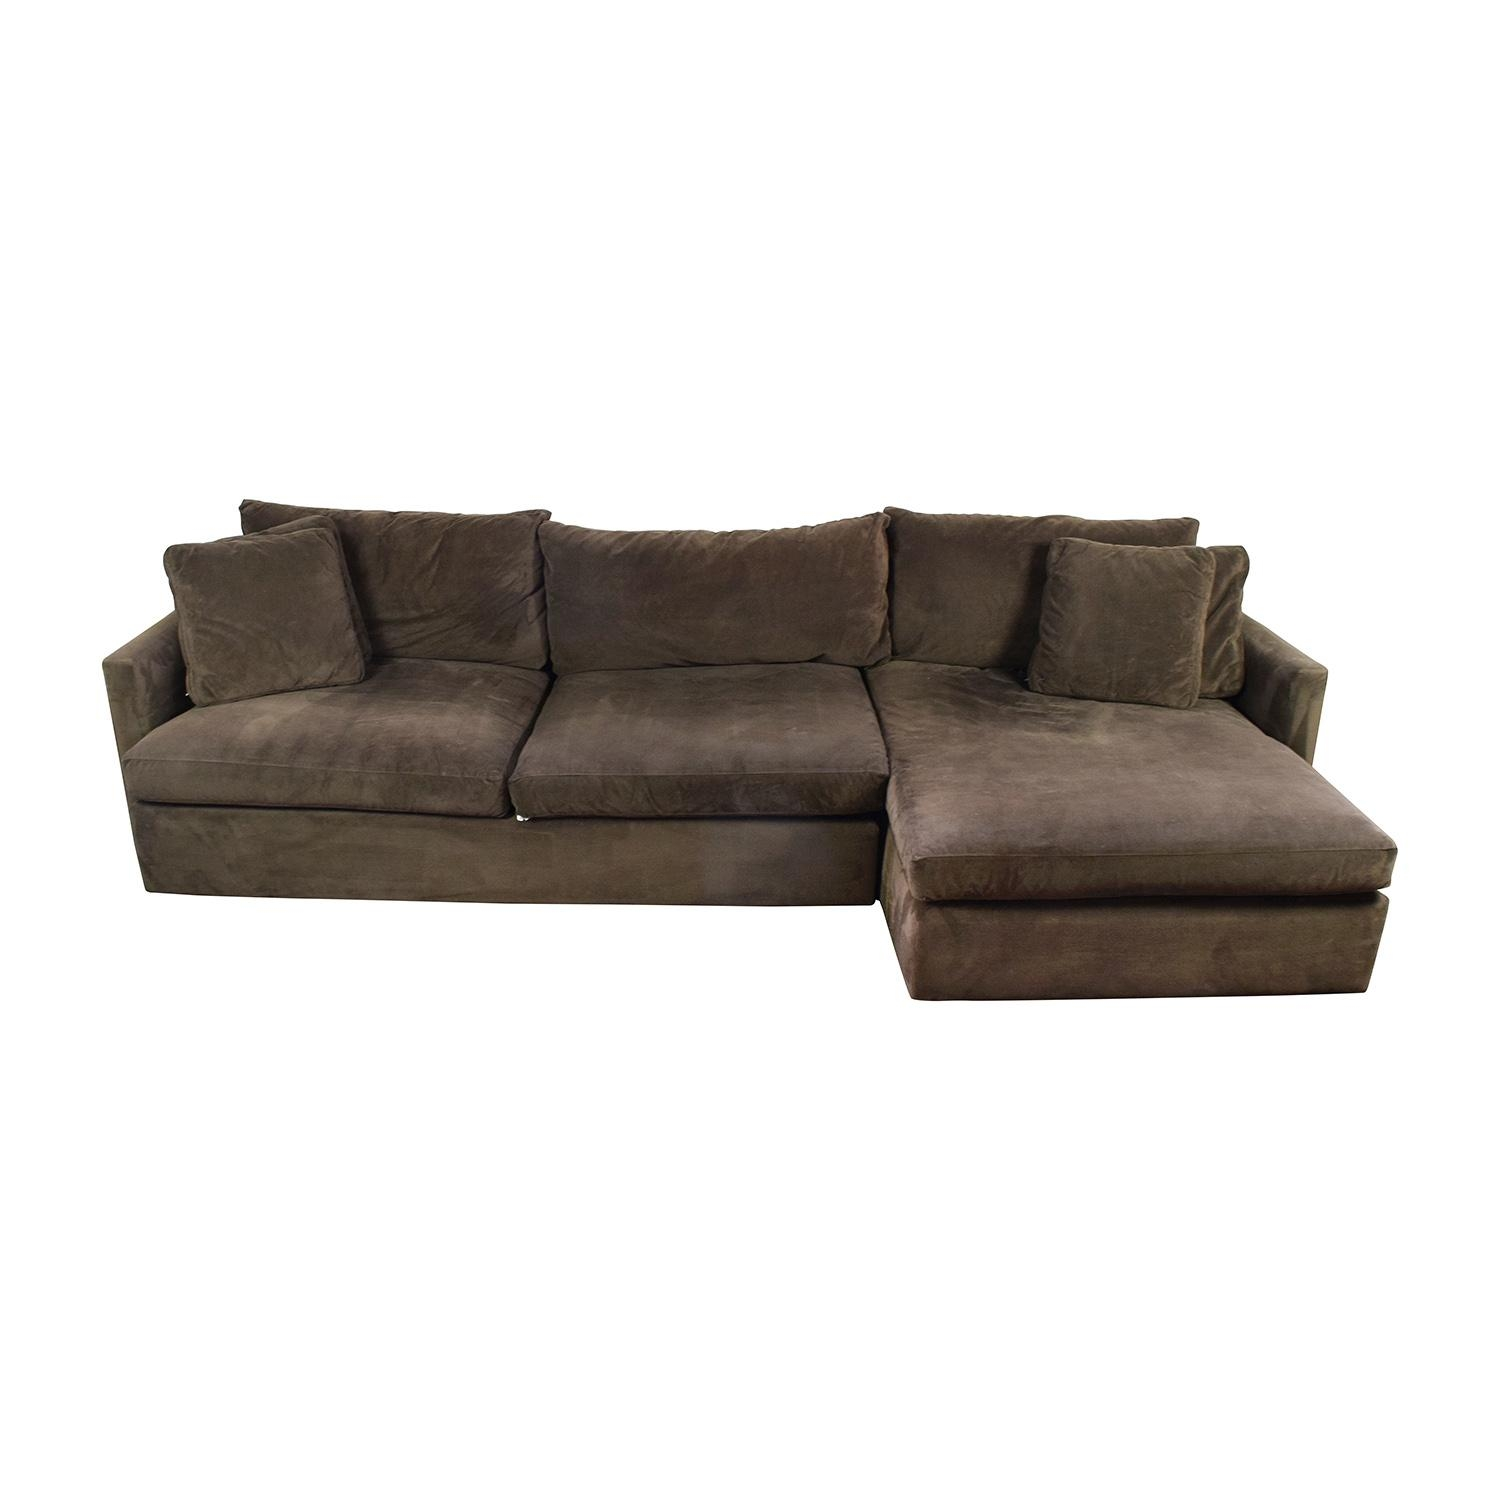 89% Off – Crate And Barrel Crate & Barrel Brown Left Arm Sectional With Regard To Crate And Barrel Sectional (Image 6 of 15)